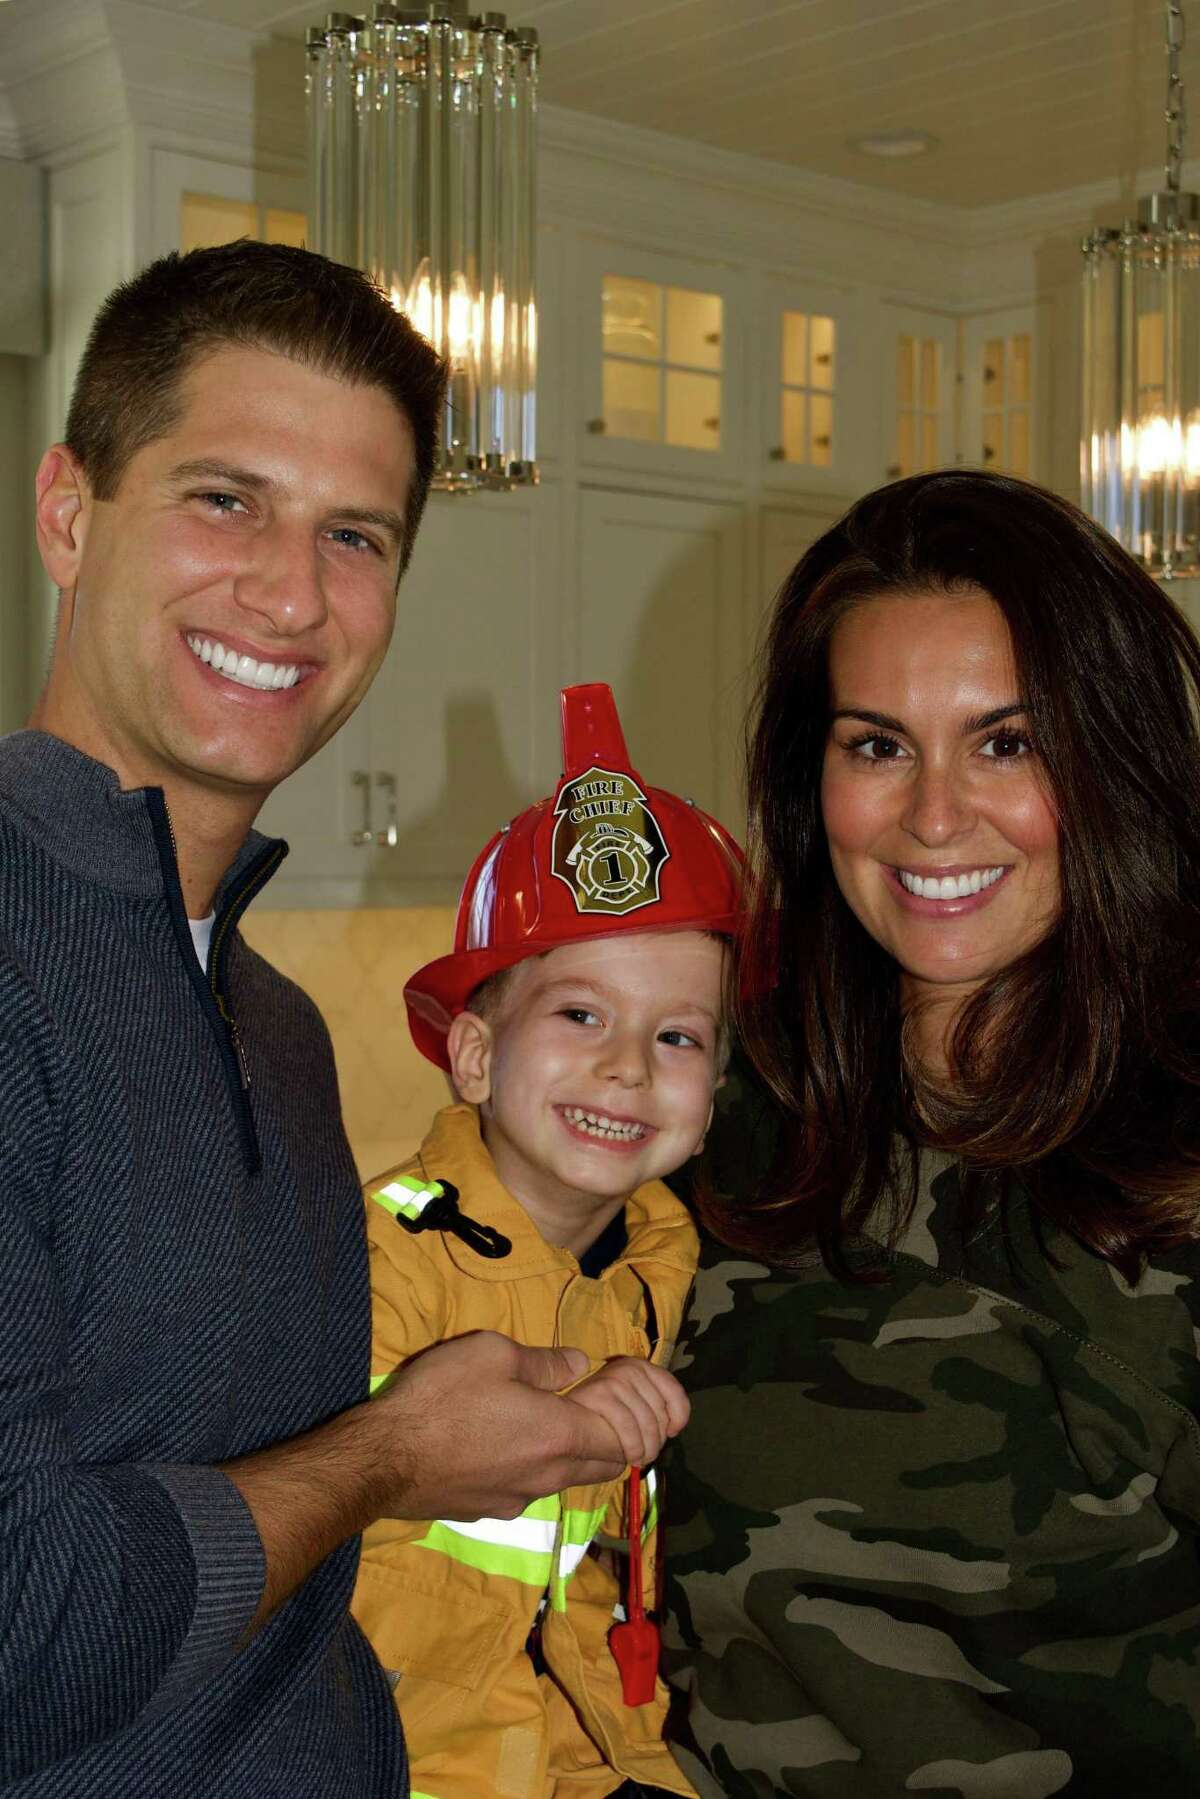 Carter Avellone of New Canaan, held by his parents Peter and Natalie. Natalie's